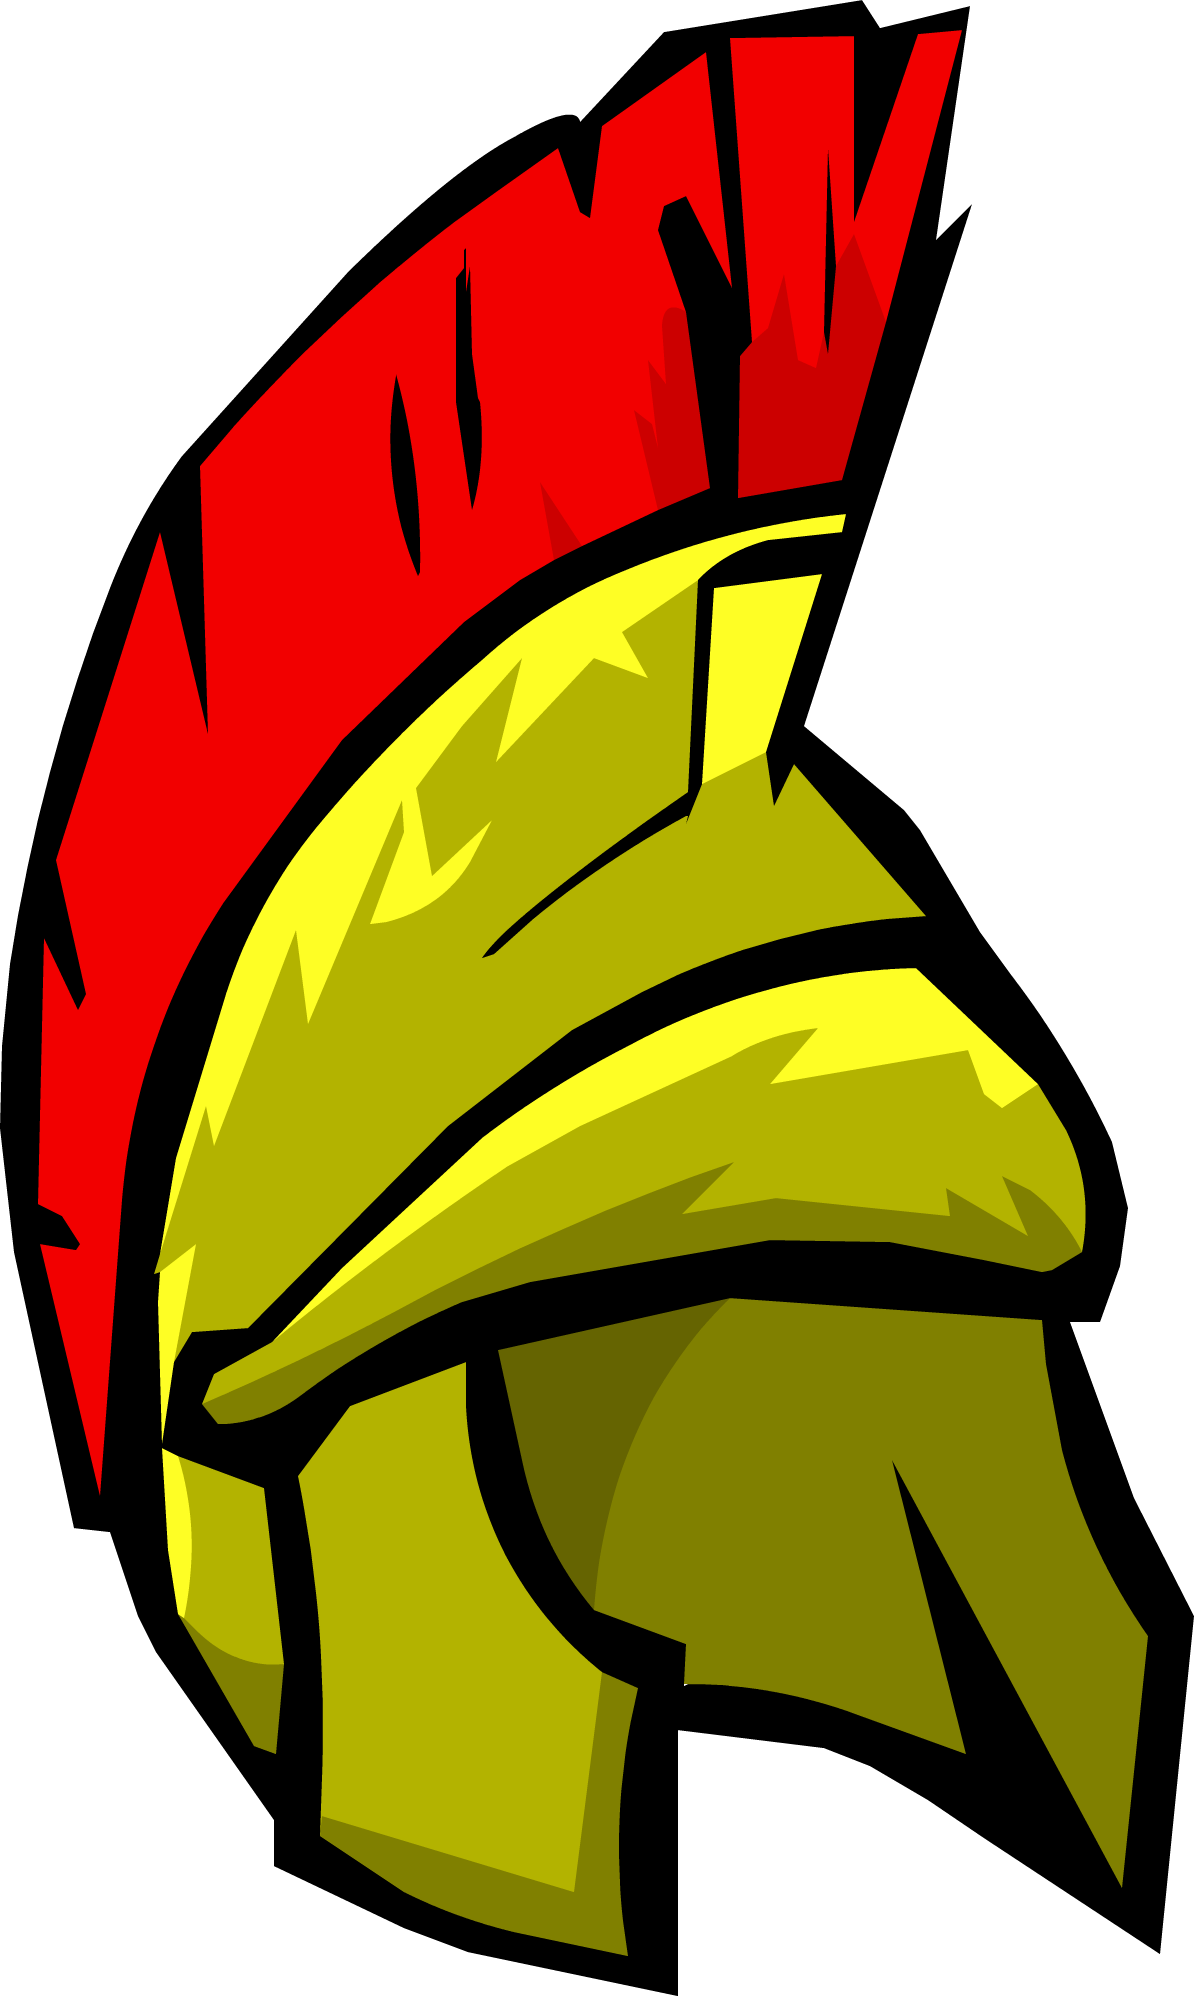 Hill clipart over hill. Image roman helmet png